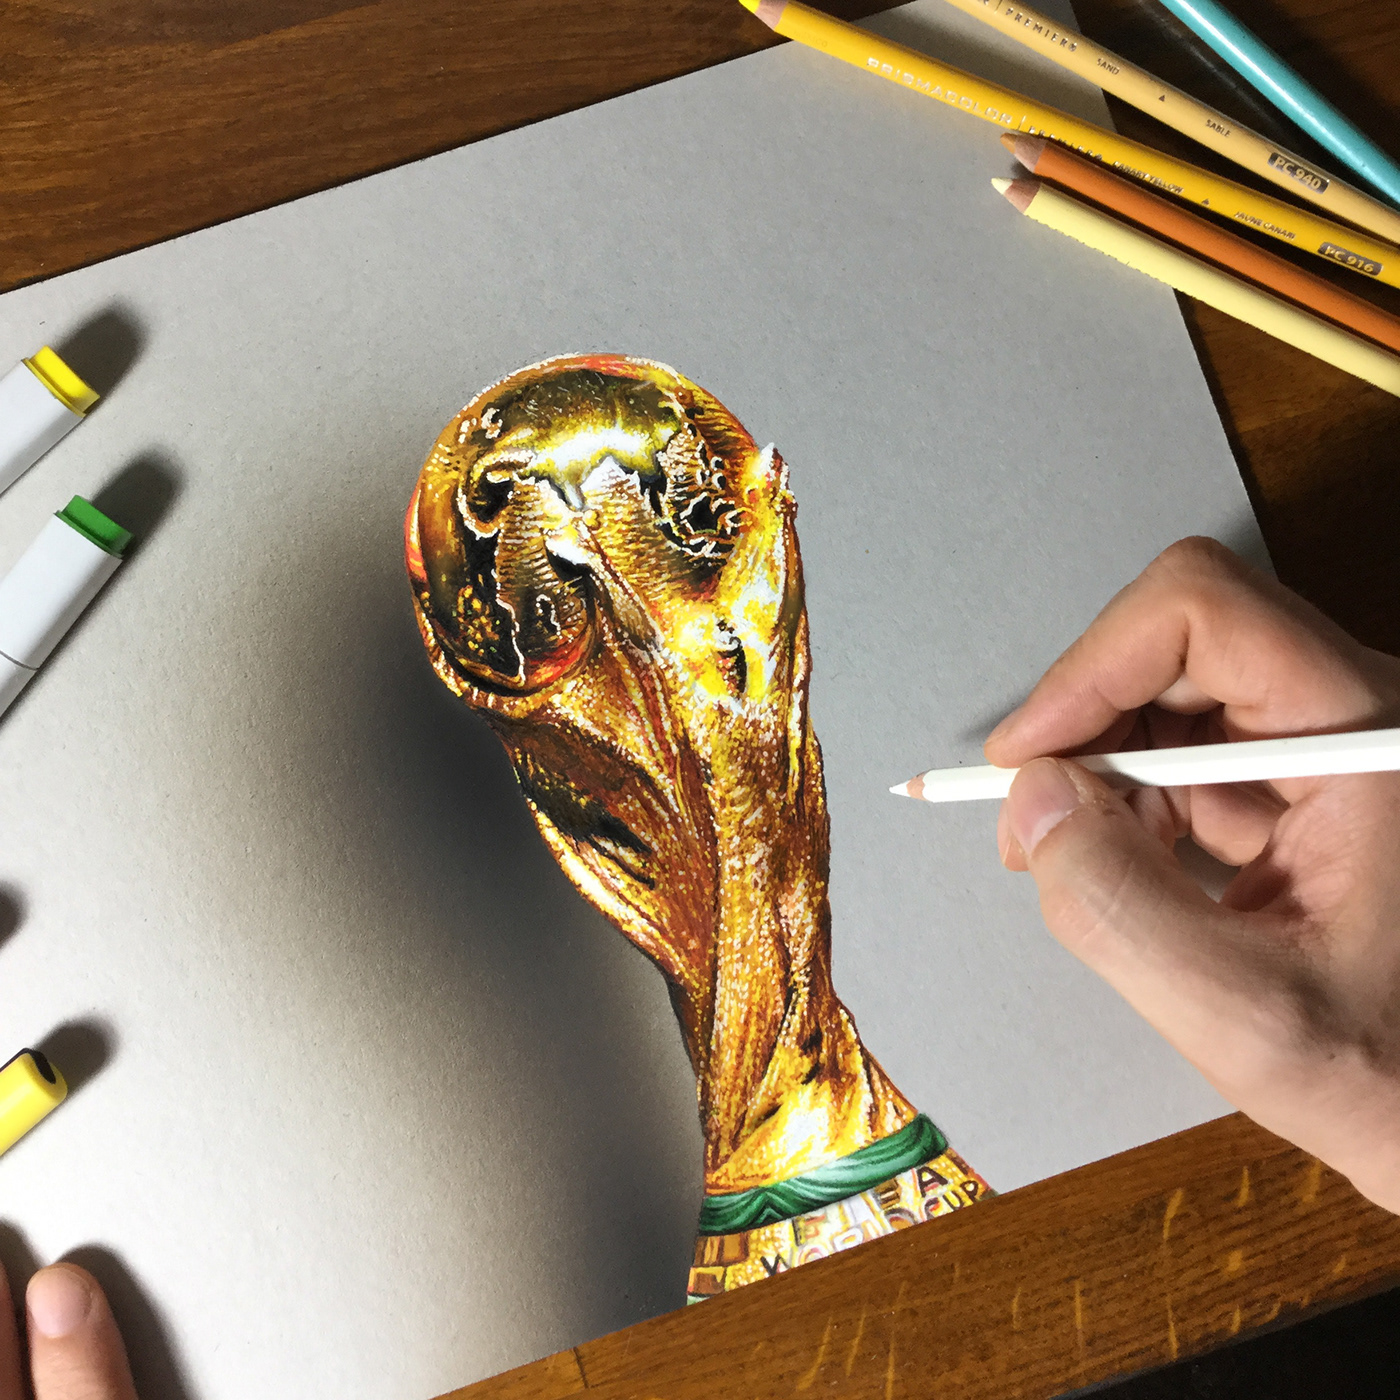 Waiting for the final match france croatia i decided to re create one of my famous drawing the fifa world cup trophy which is the best